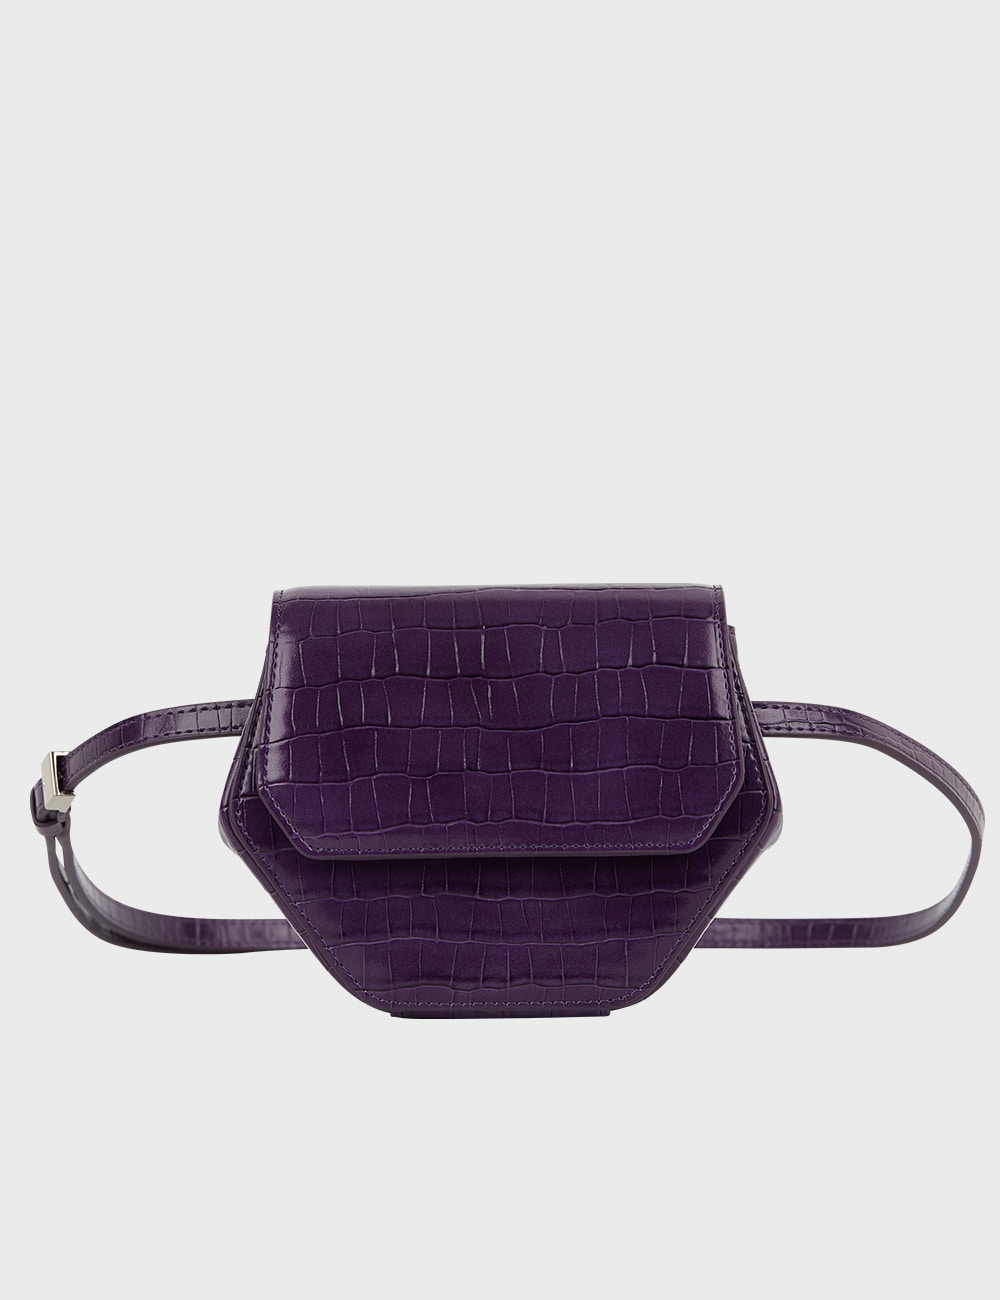 MAISON246,246 MAGOT CROCODILE PENNY BAG - PURPLE,No.246